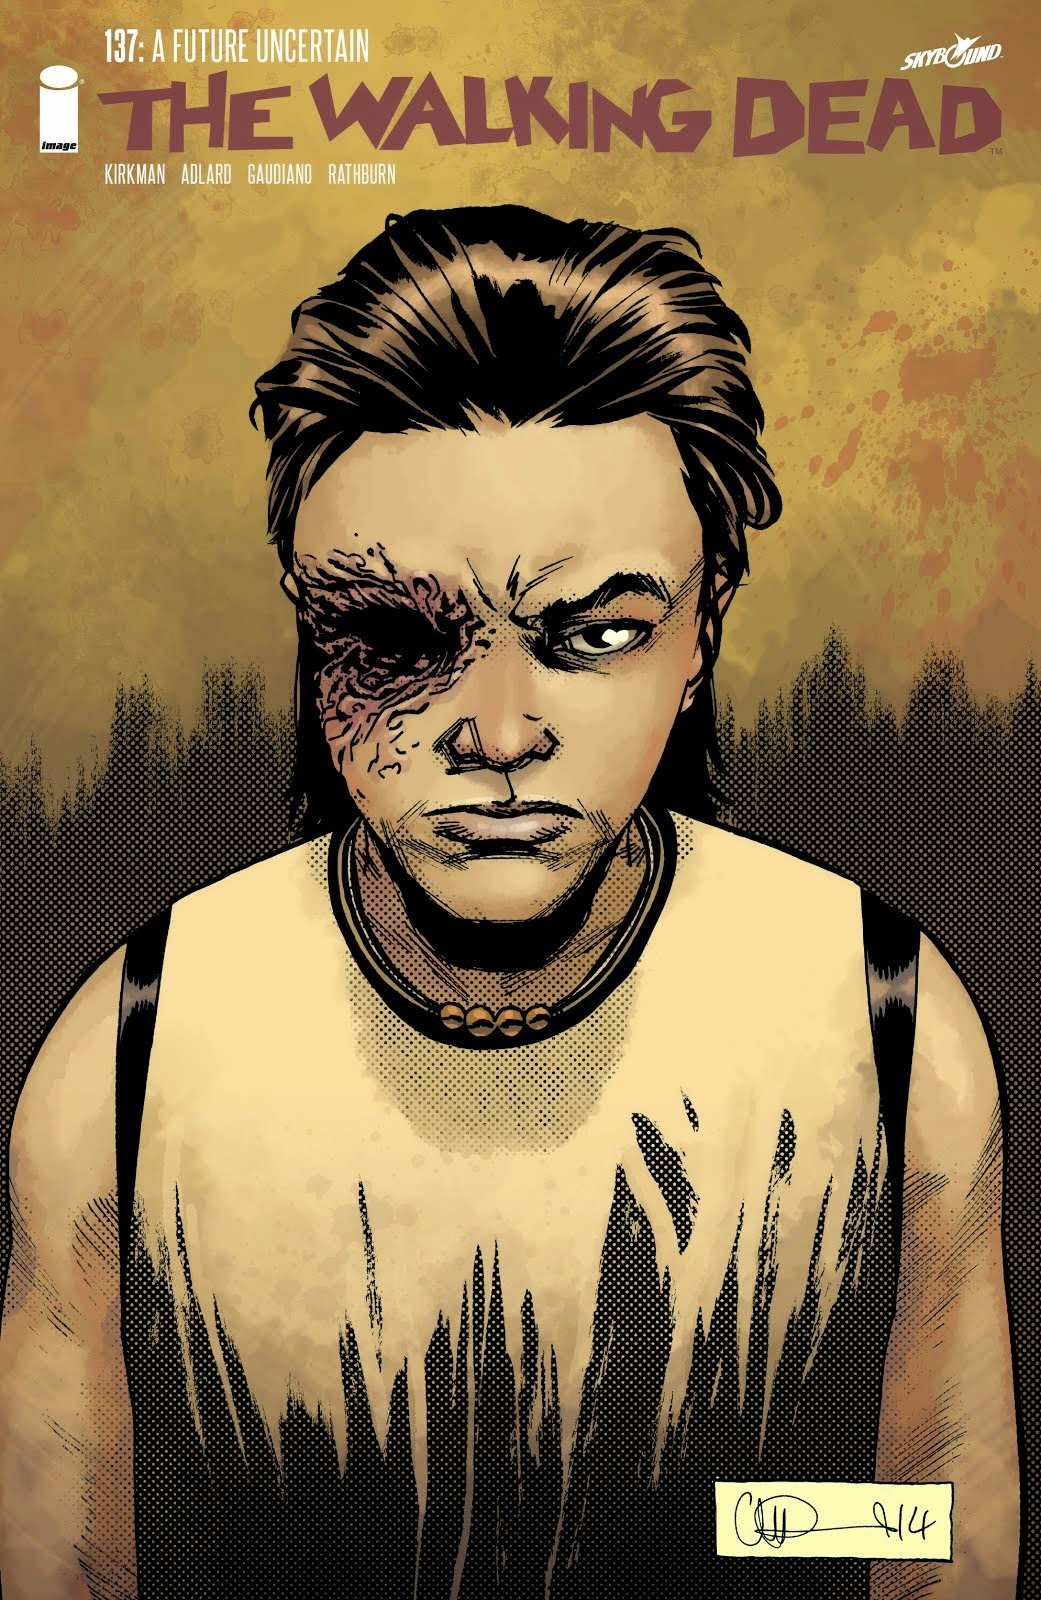 The Walking Dead Comics #137: A Future Uncertain